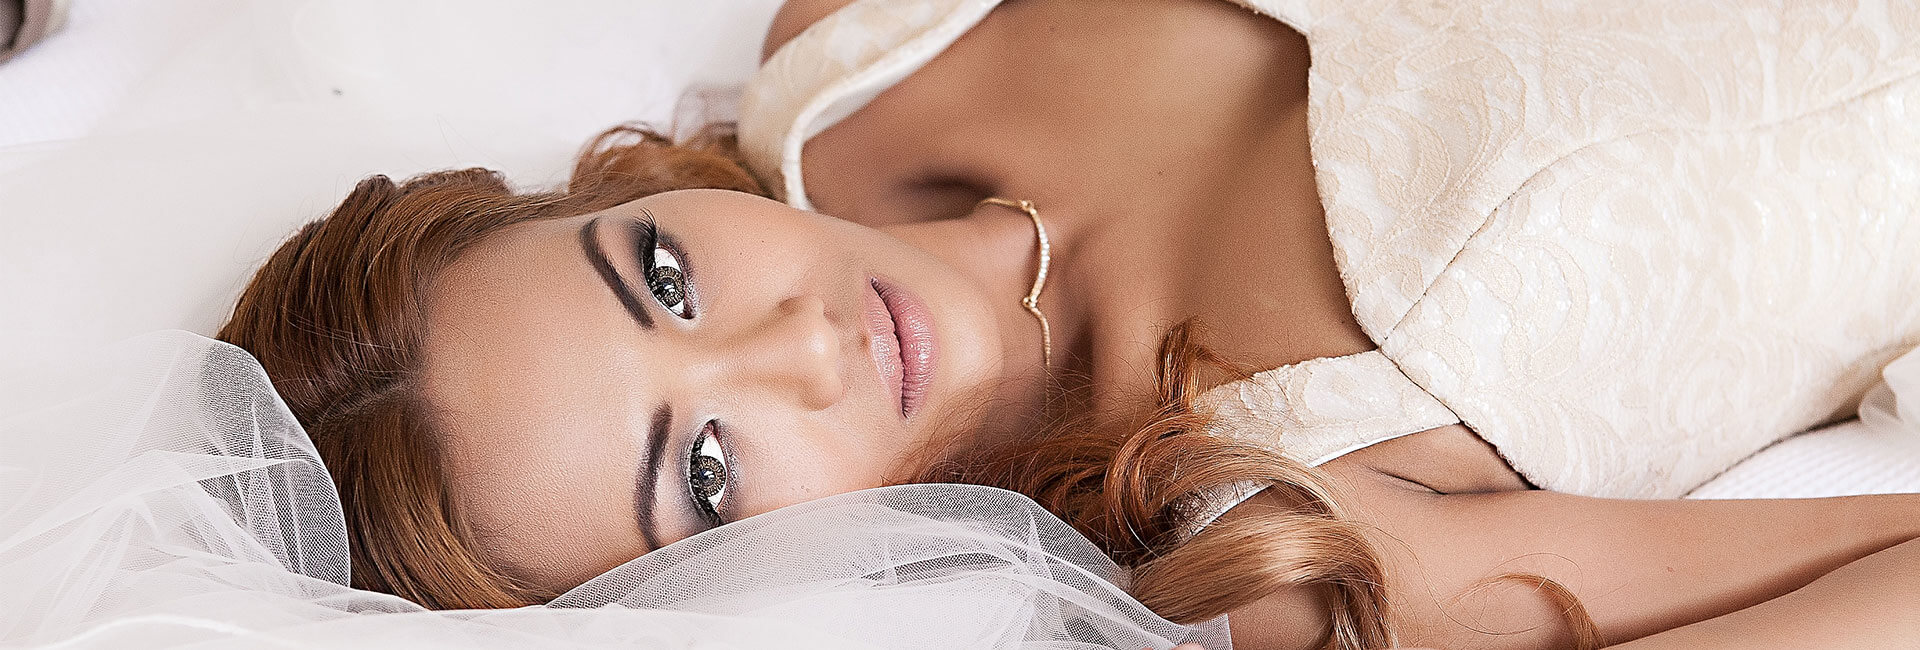 hollywood-brides-01